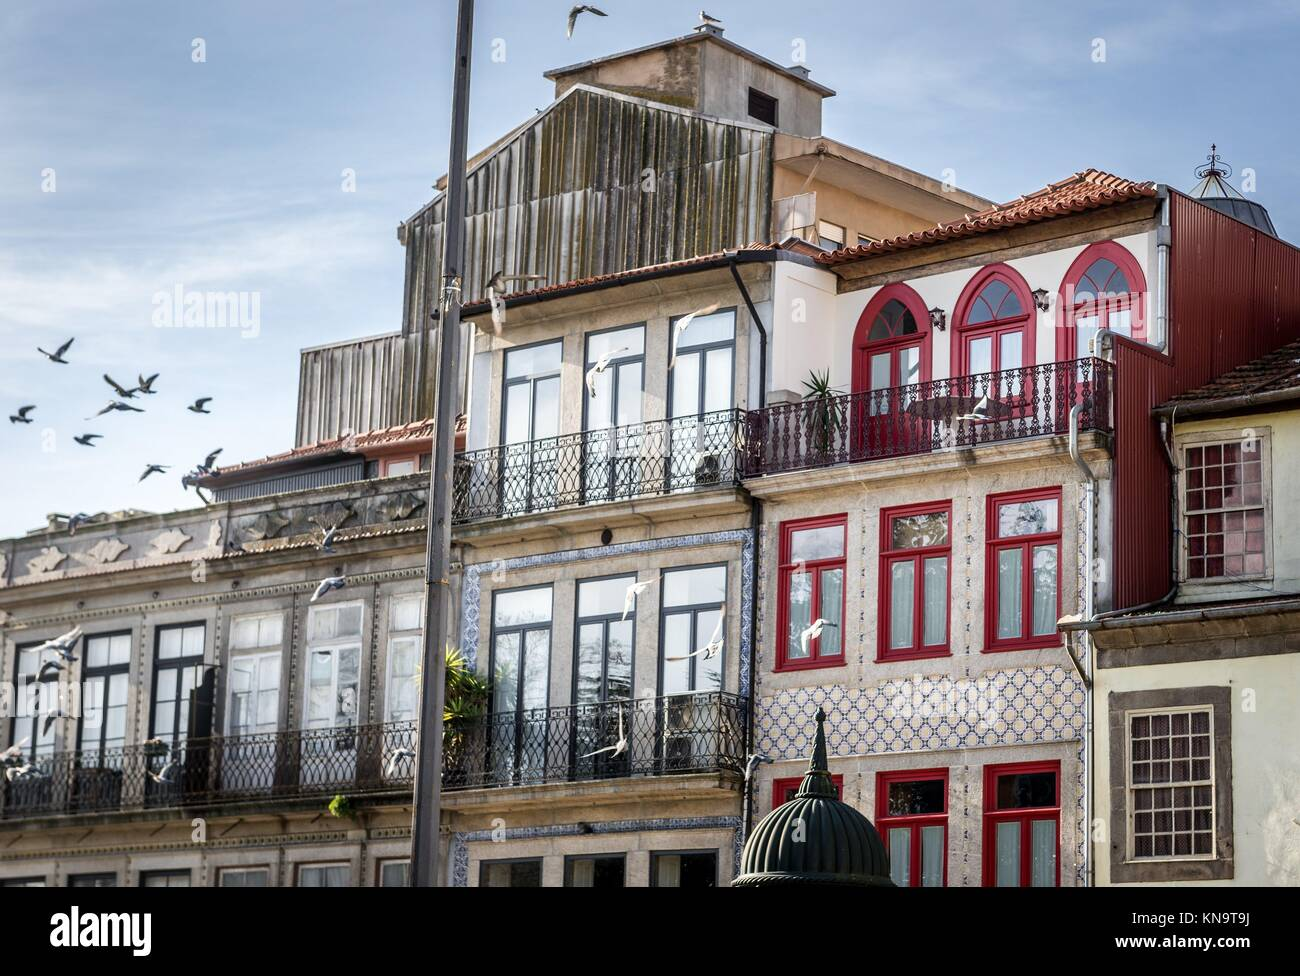 Residential buildings in Santo Ildefonso district of Porto city on Iberian Peninsula, second largest city in Portugal. - Stock Image